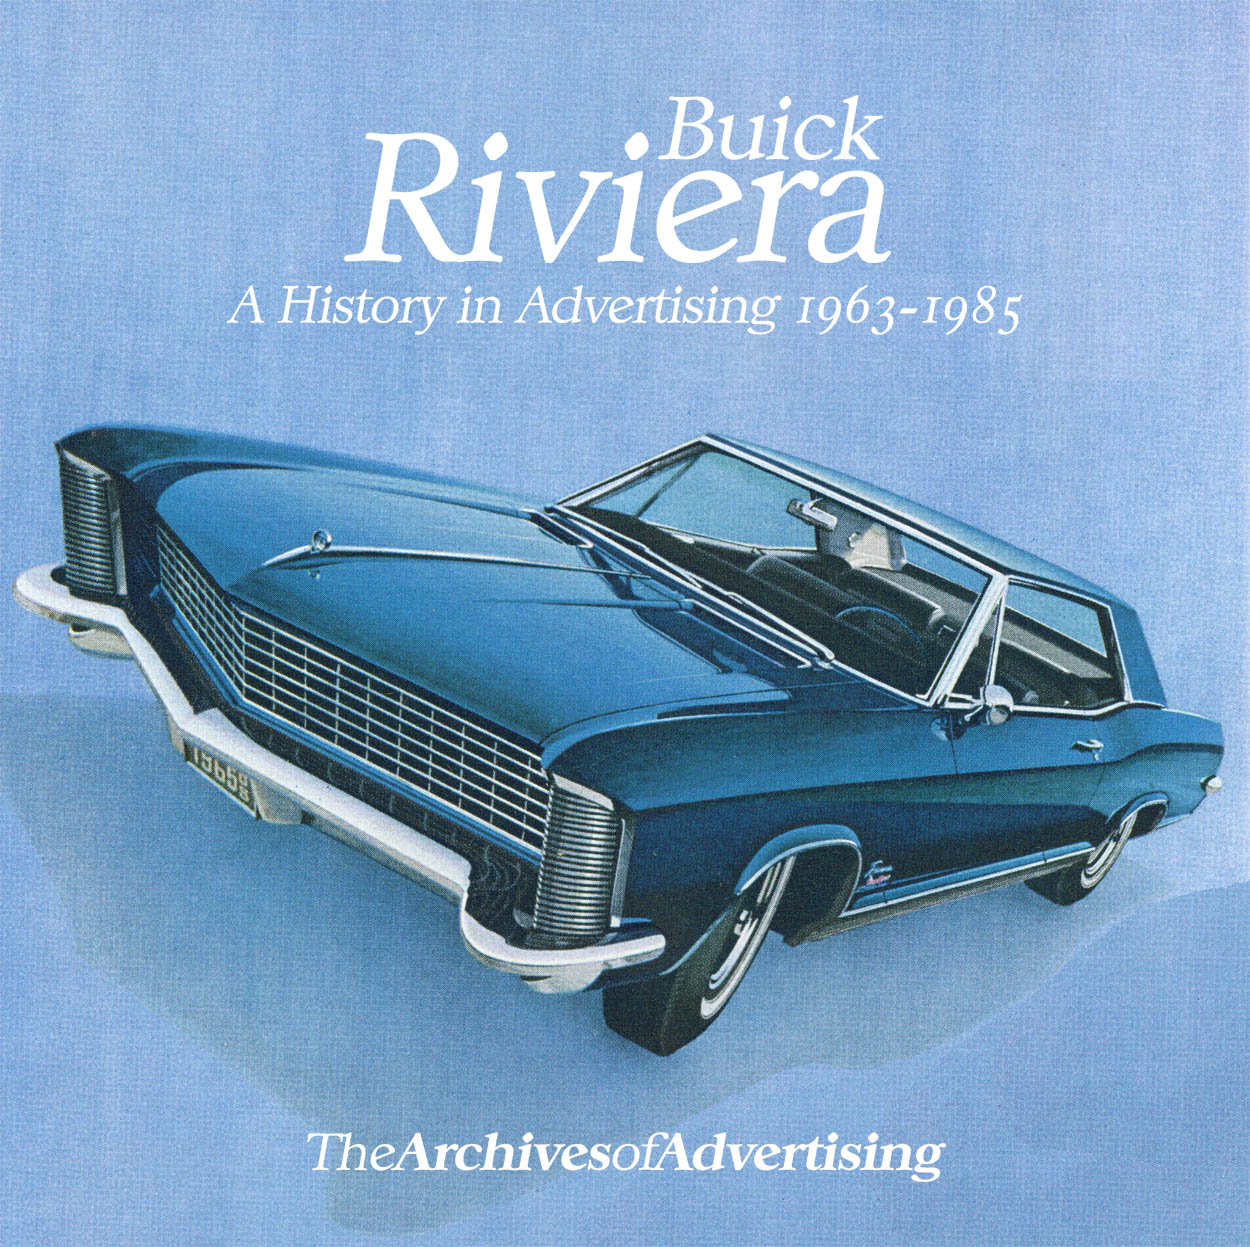 1963 1964 1965 1966 1967 1968 1969 1970 1971-1985 Buick Riviera Ad CD-ROM 95 ads